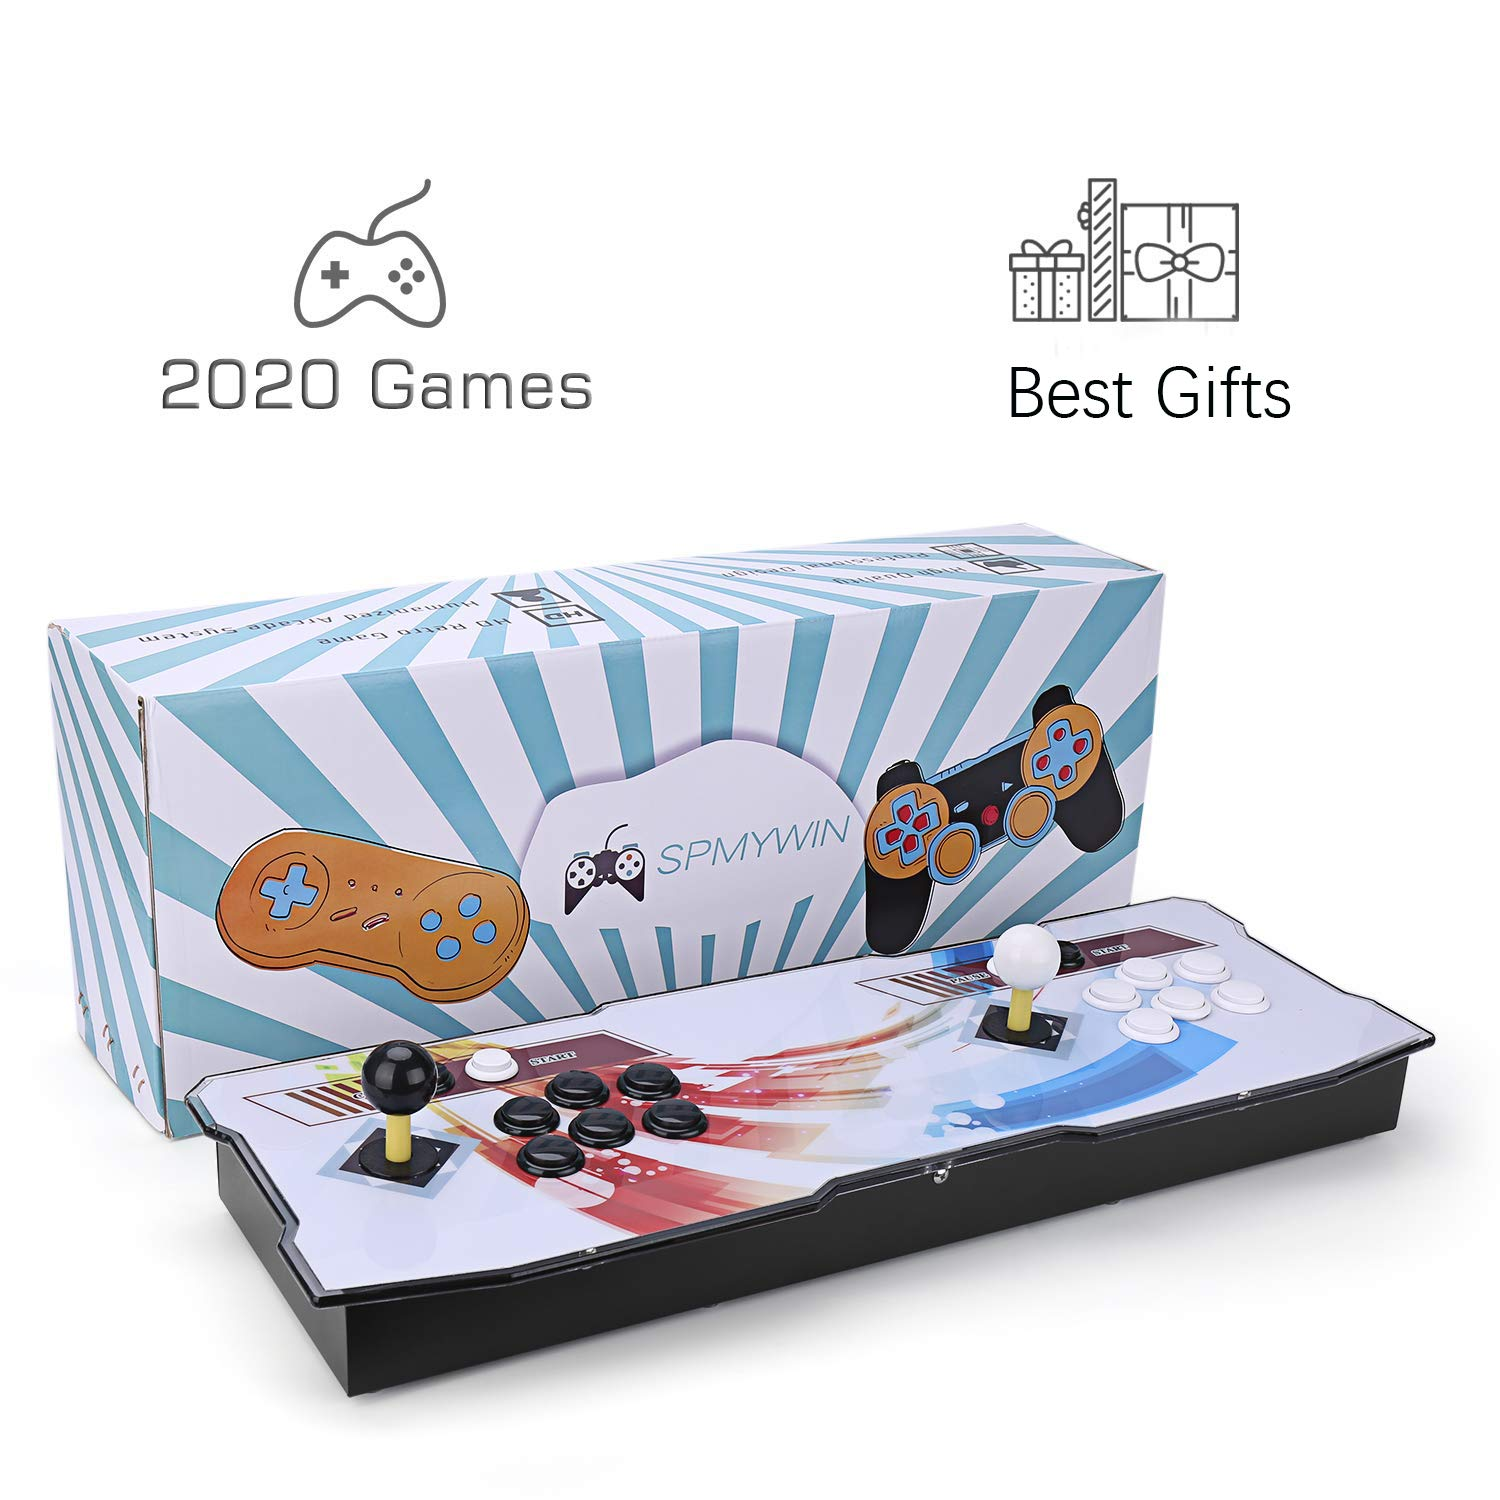 Christmas Gift Ideas 2020 For Gamers Amazon.com: Spmywin Pandoras Box 6 Arcade Video Game Console